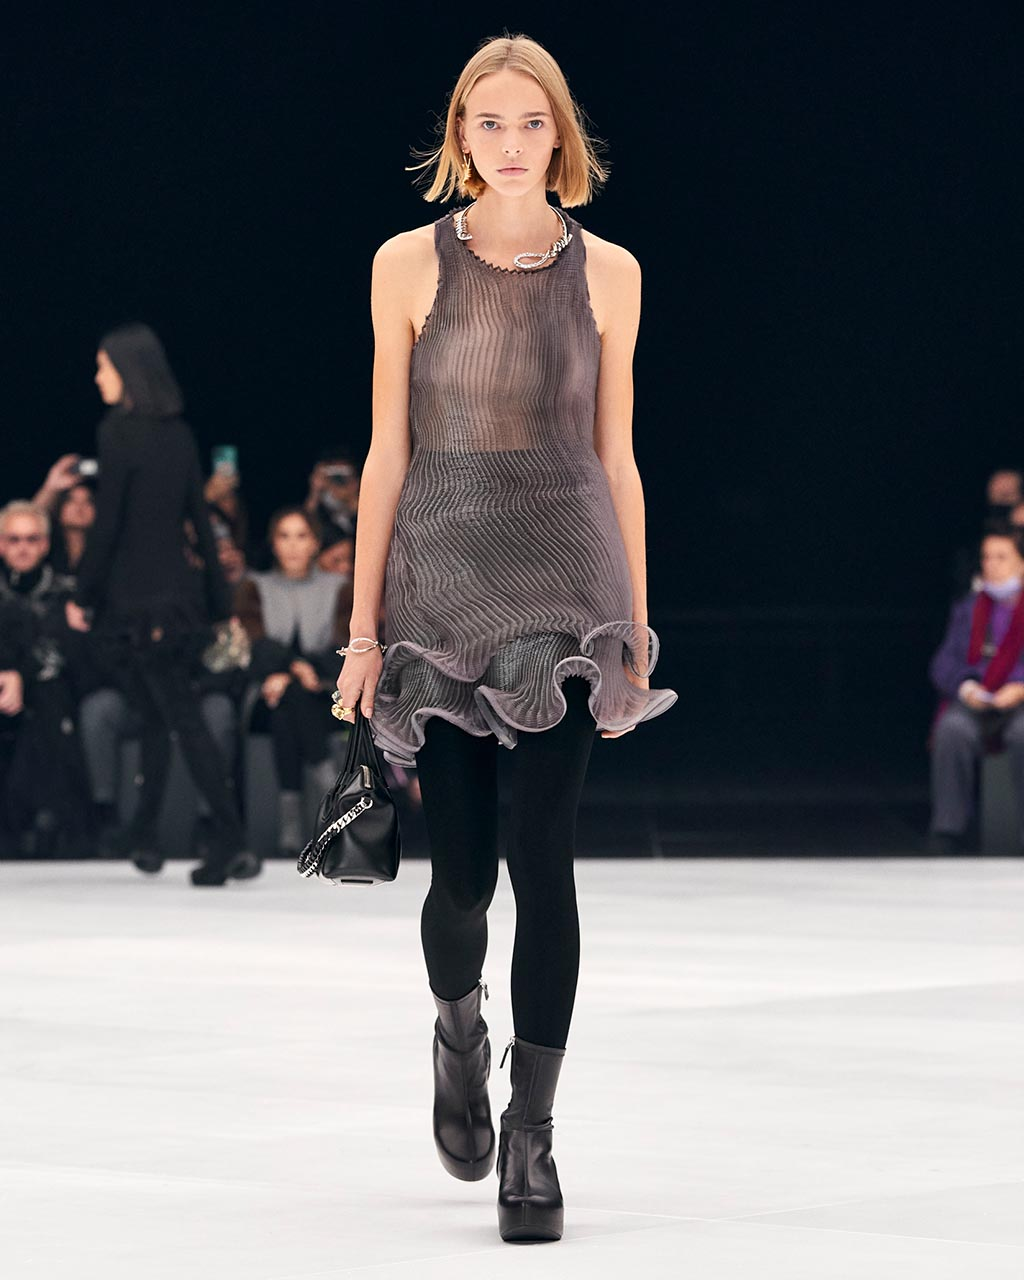 Spring Summer 2022 collection Look 16